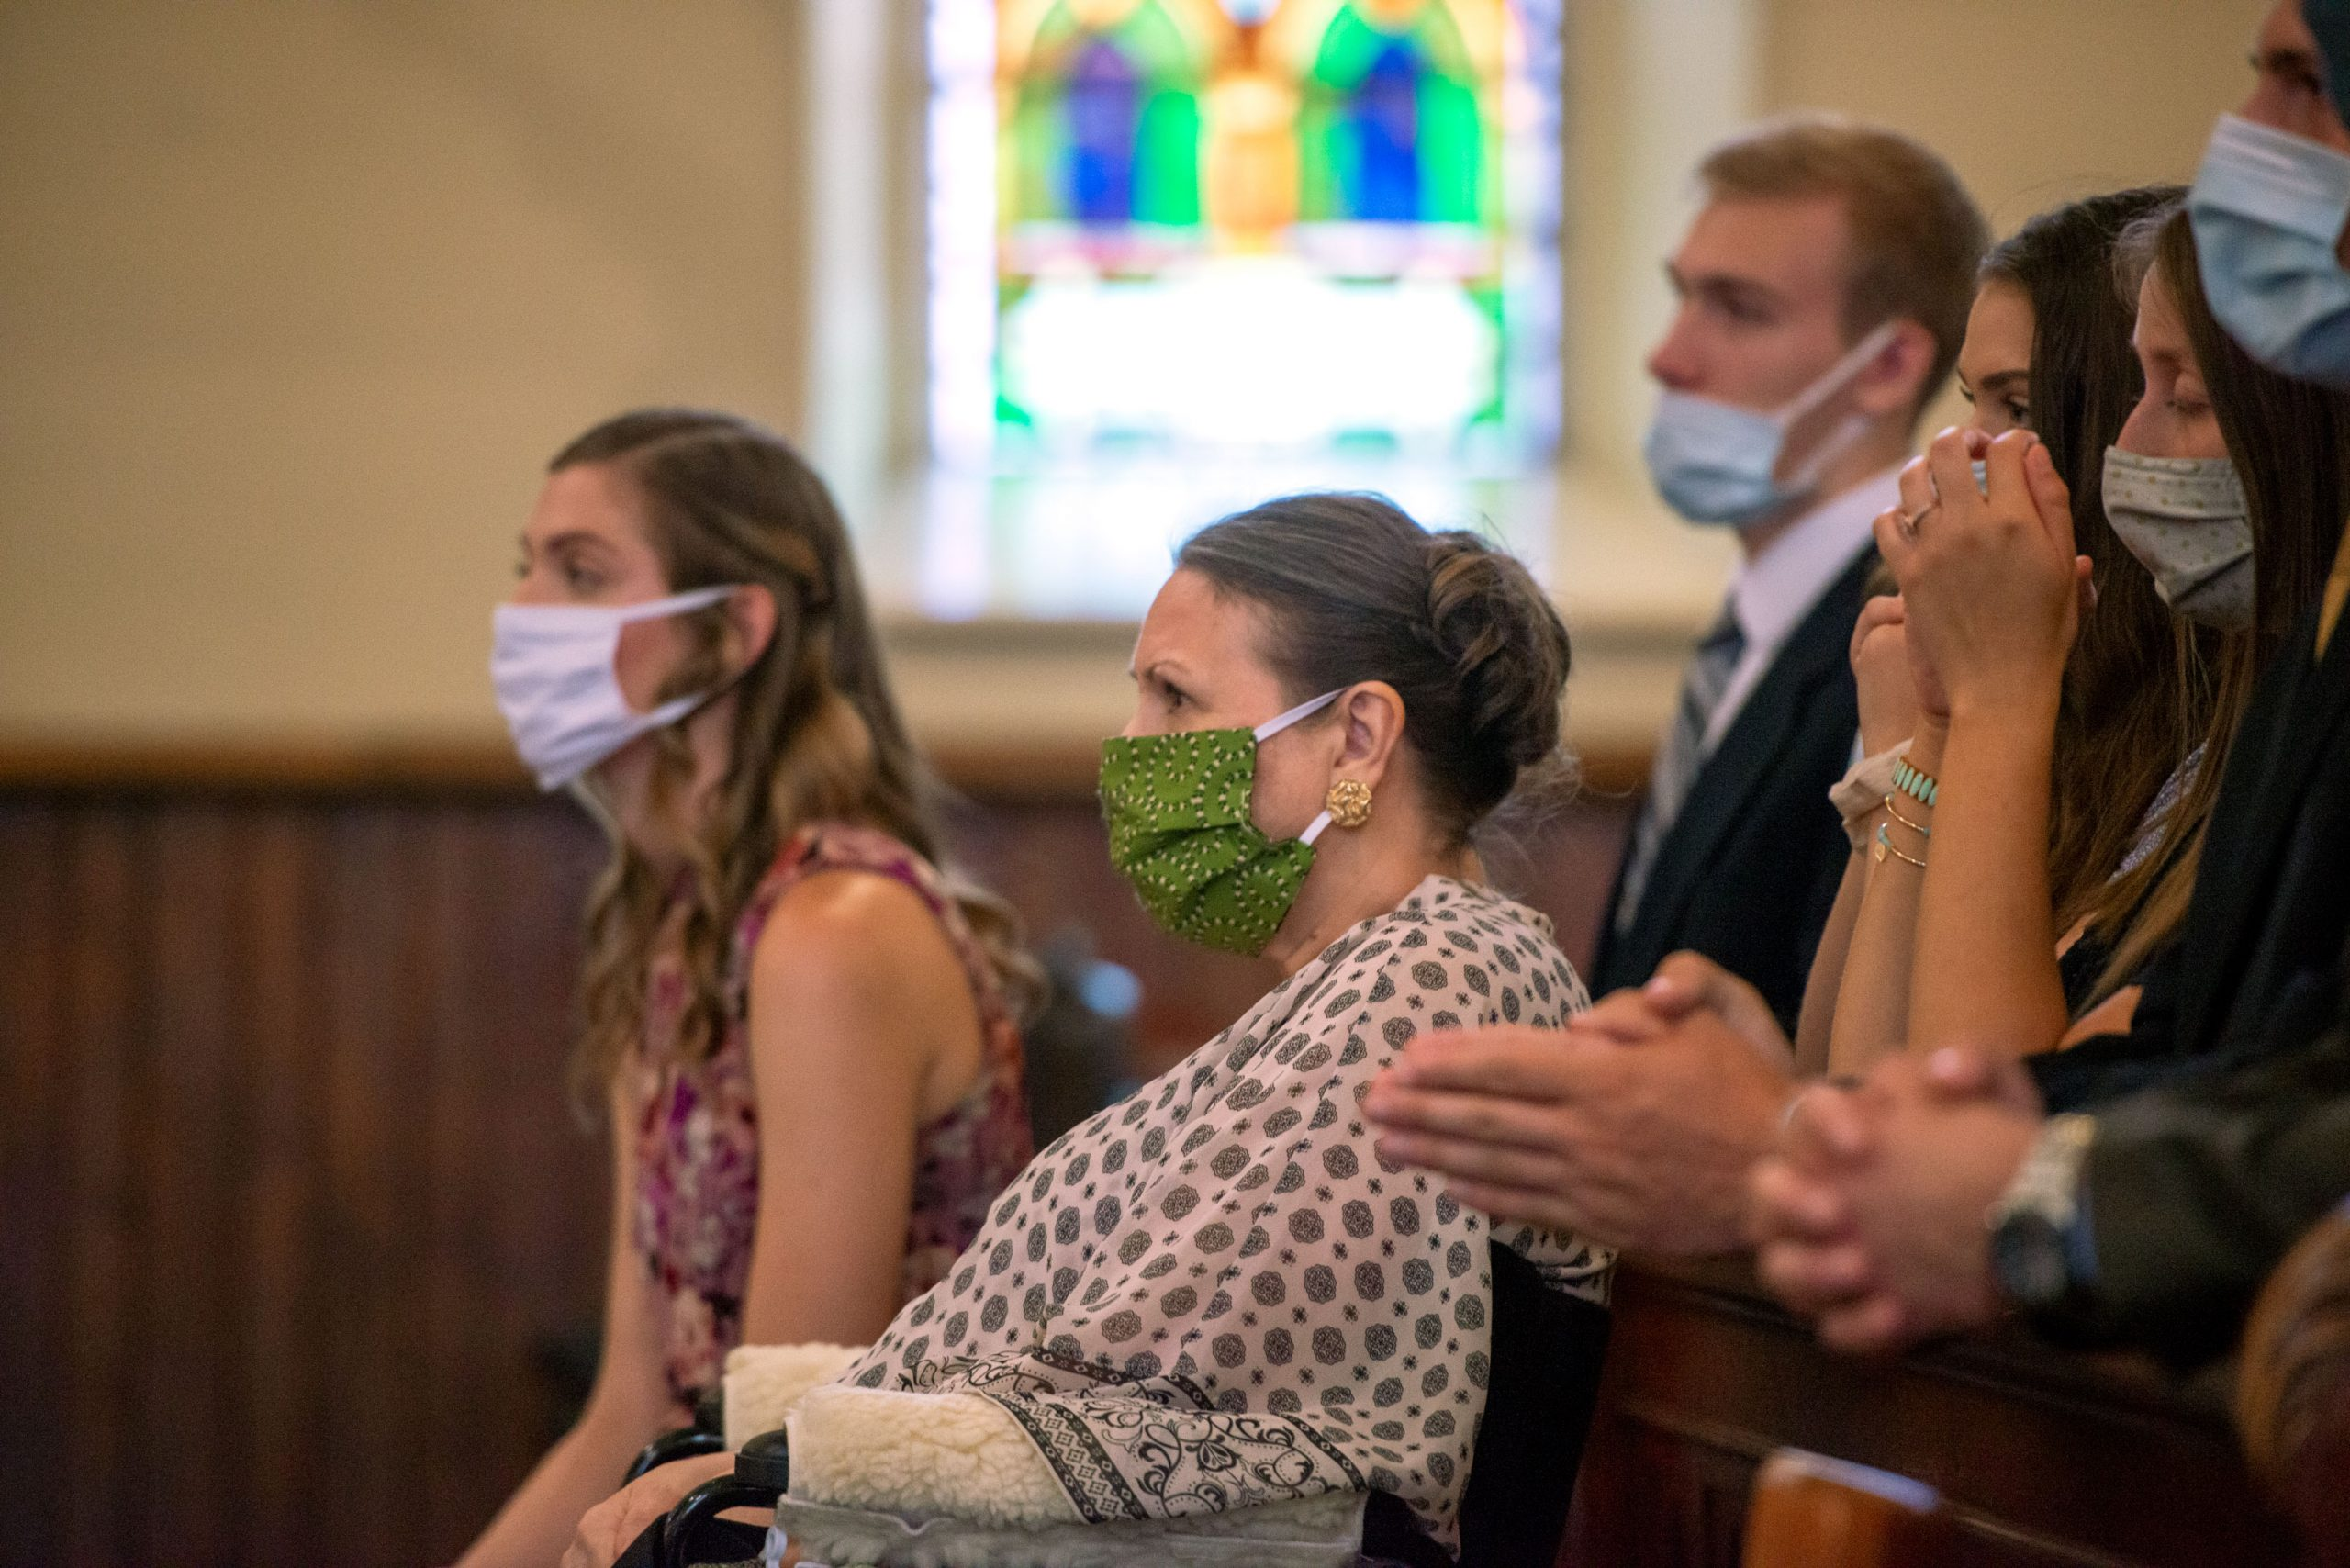 Father Martuscello's mother sits with her family during the Mass.